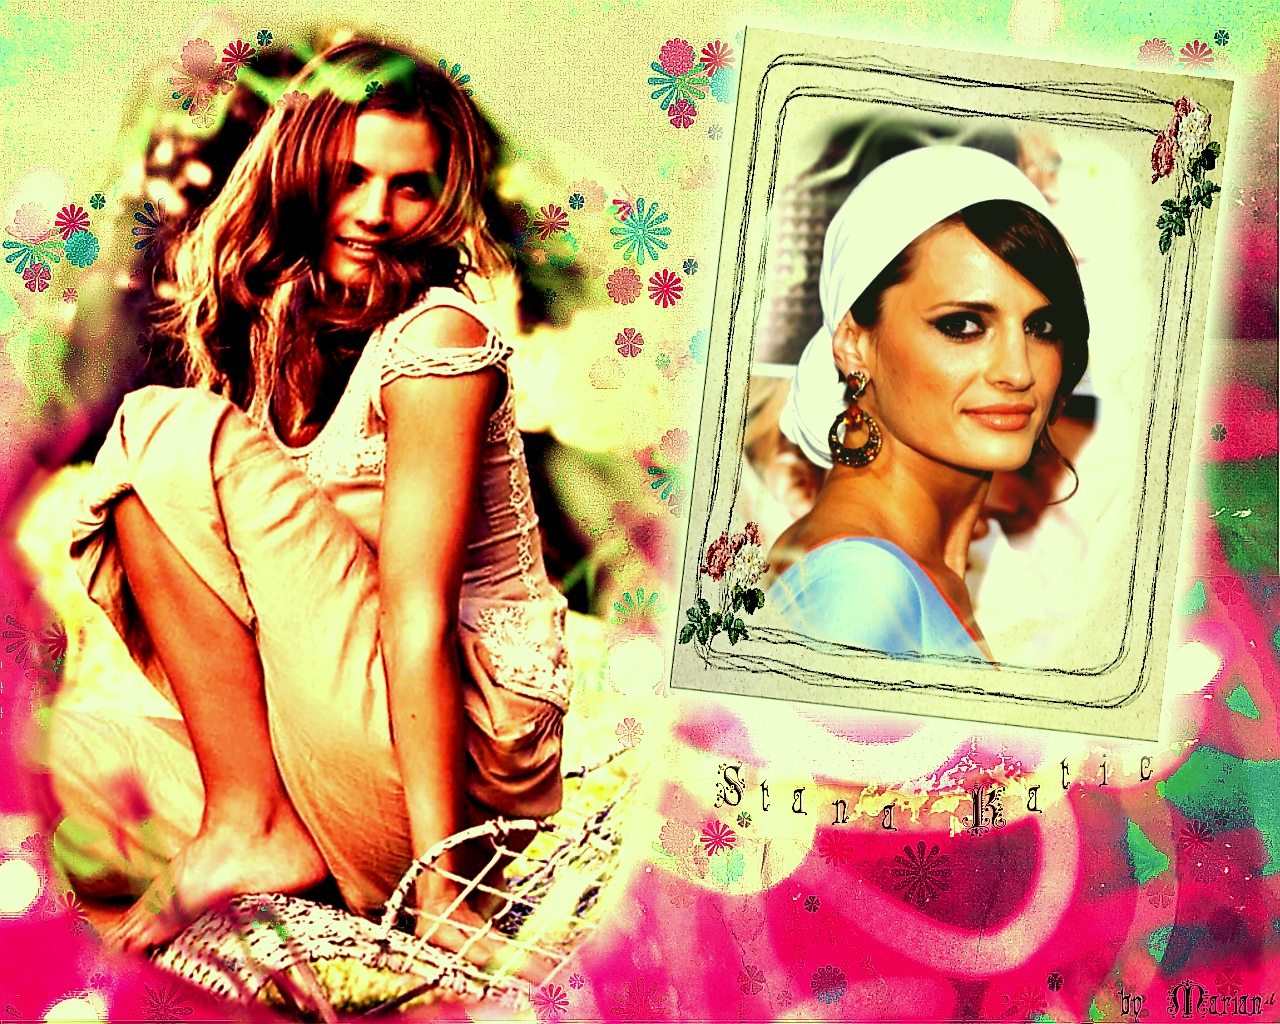 Stana Katic among the Blumen